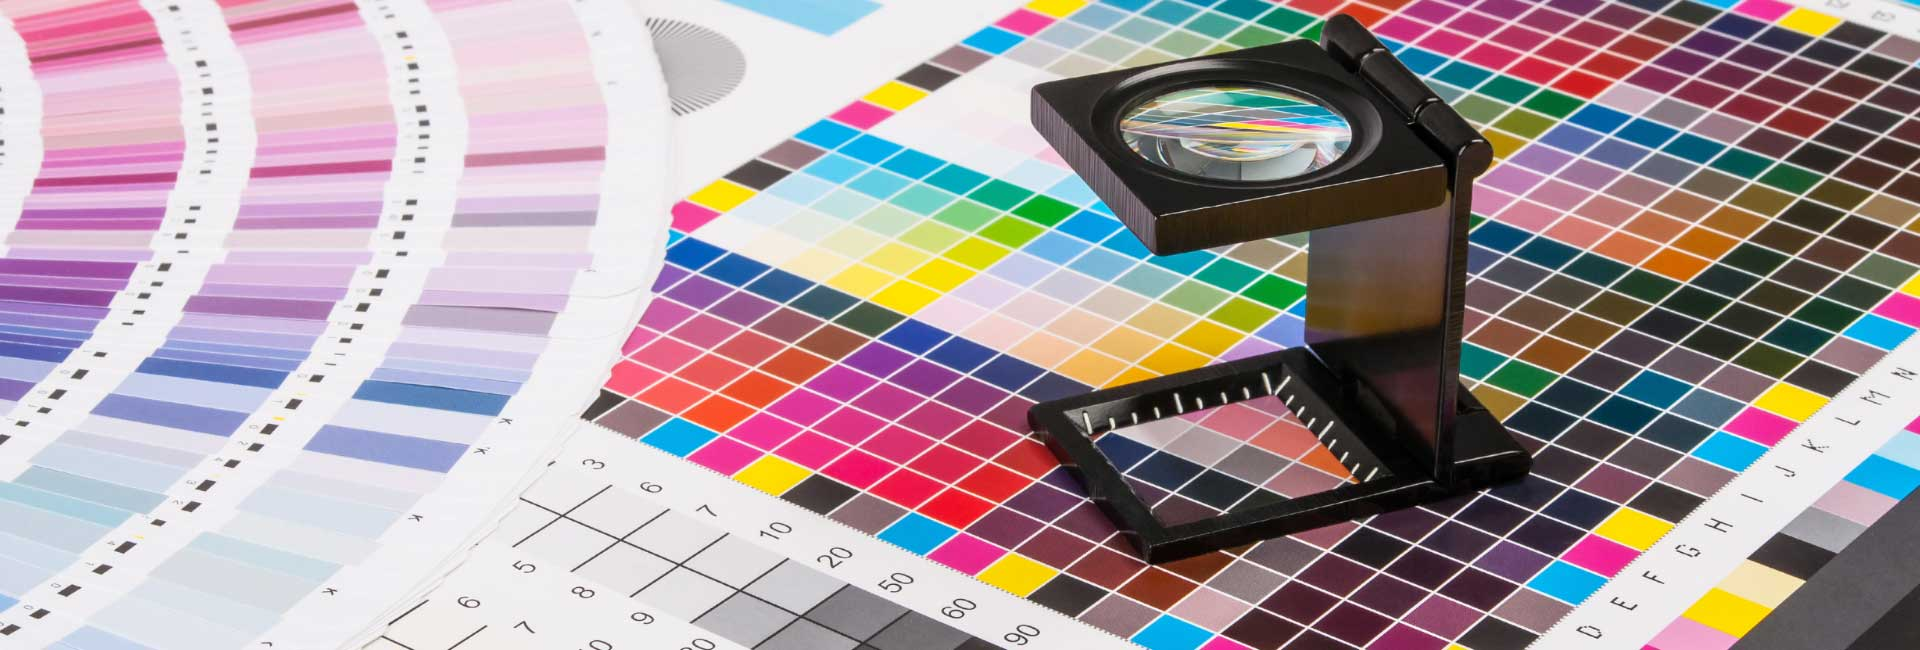 Digital Printing - Roseville Printing Services - Roseville Printing California